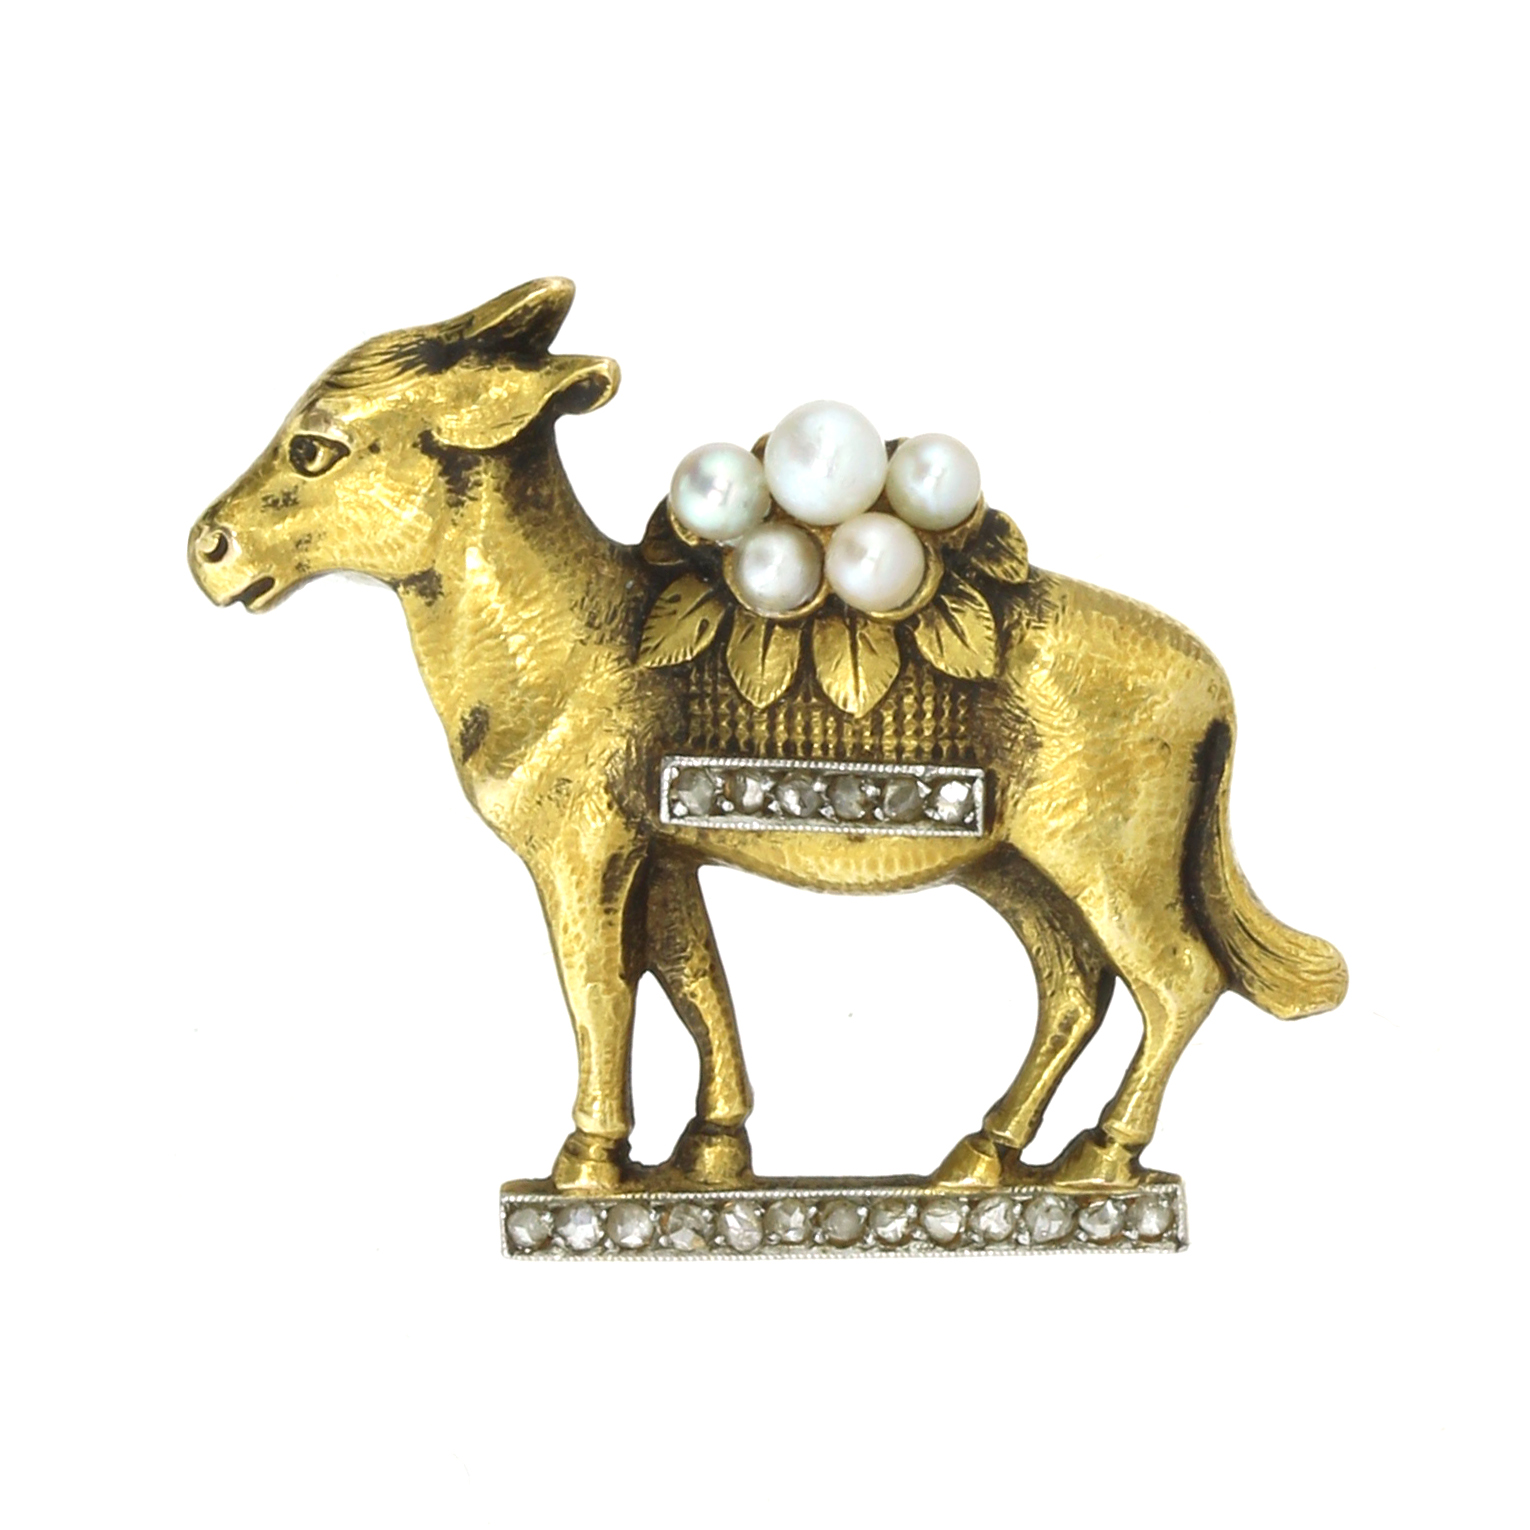 Los 50 - AN ANTIQUE DIAMOND AND PEARL DONKEY BROOCH in 18ct yellow gold modeled as a donkey standing on a